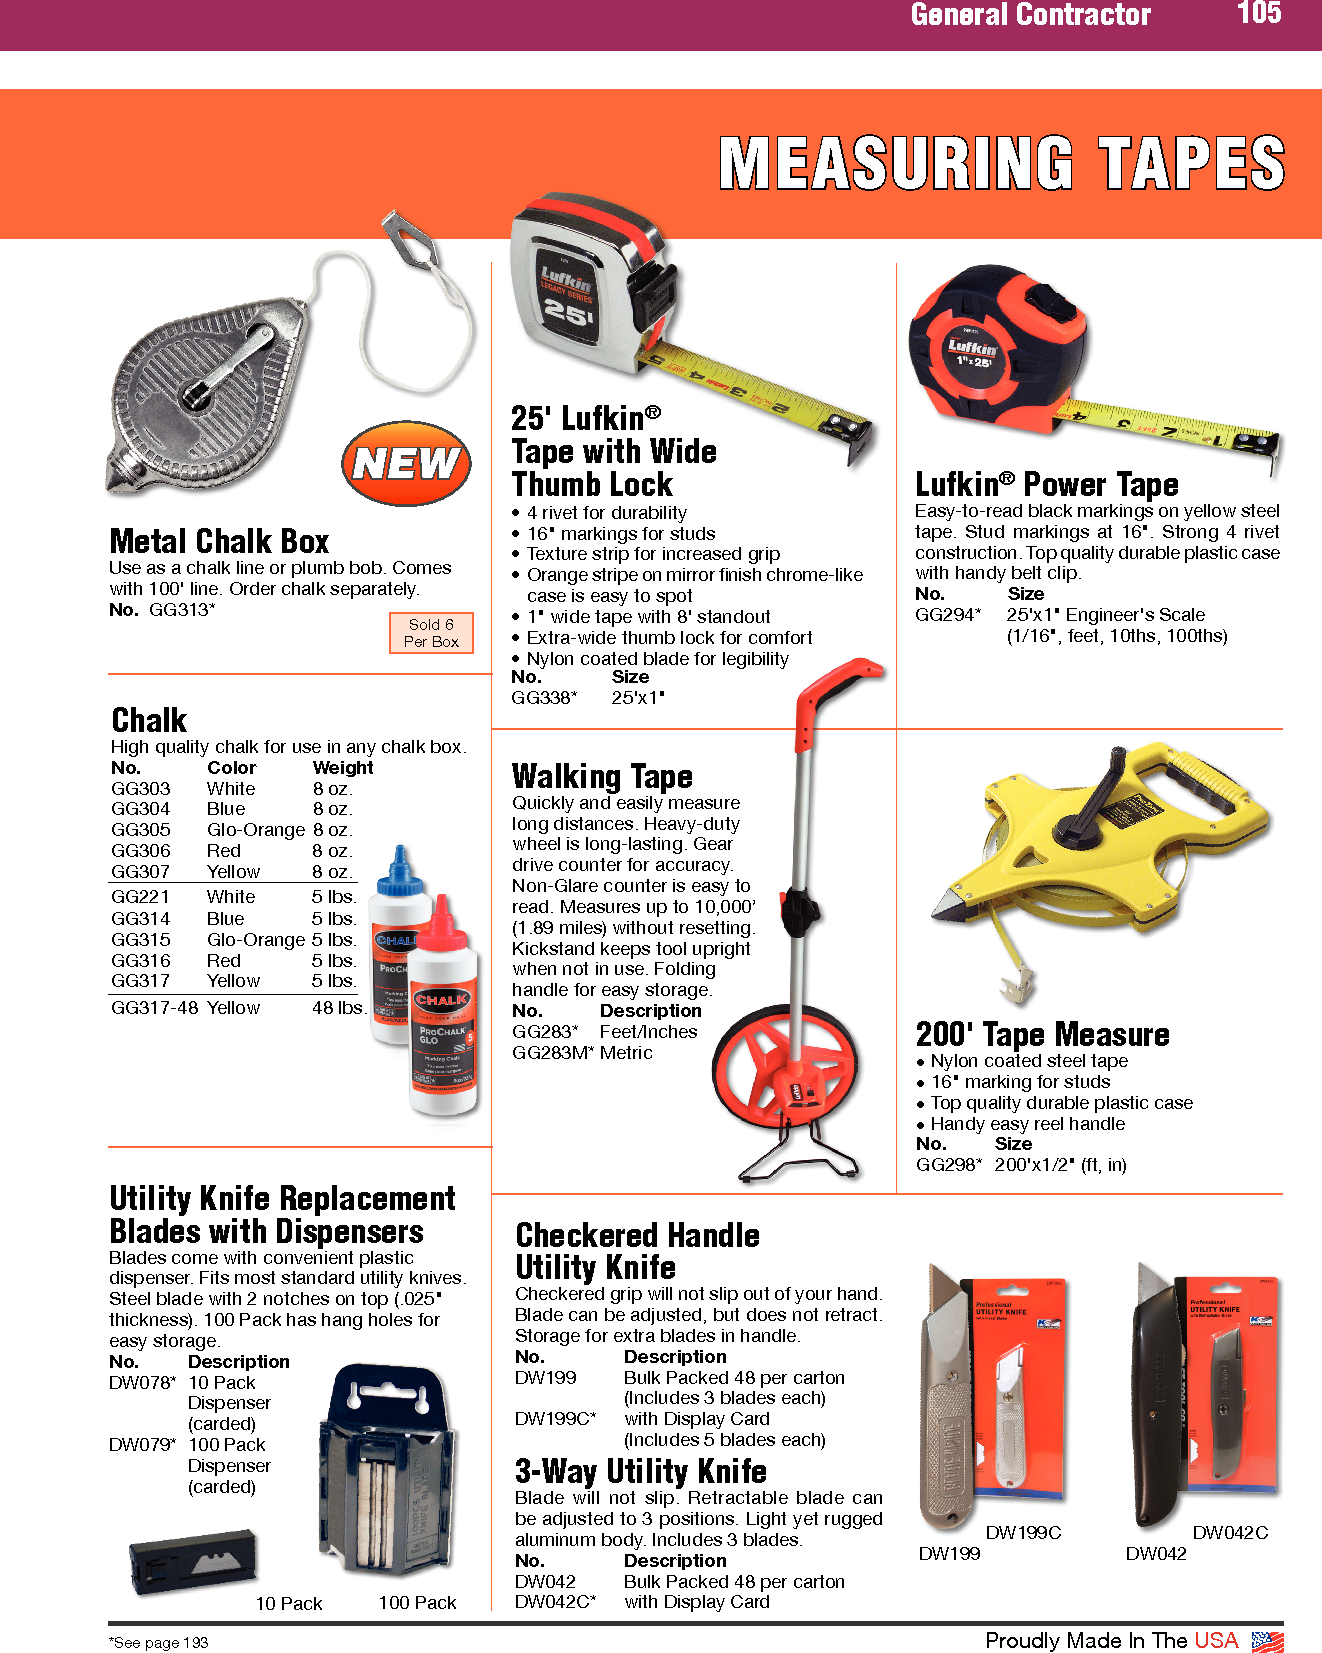 0126CatalogPage1Oct20200105.jpg